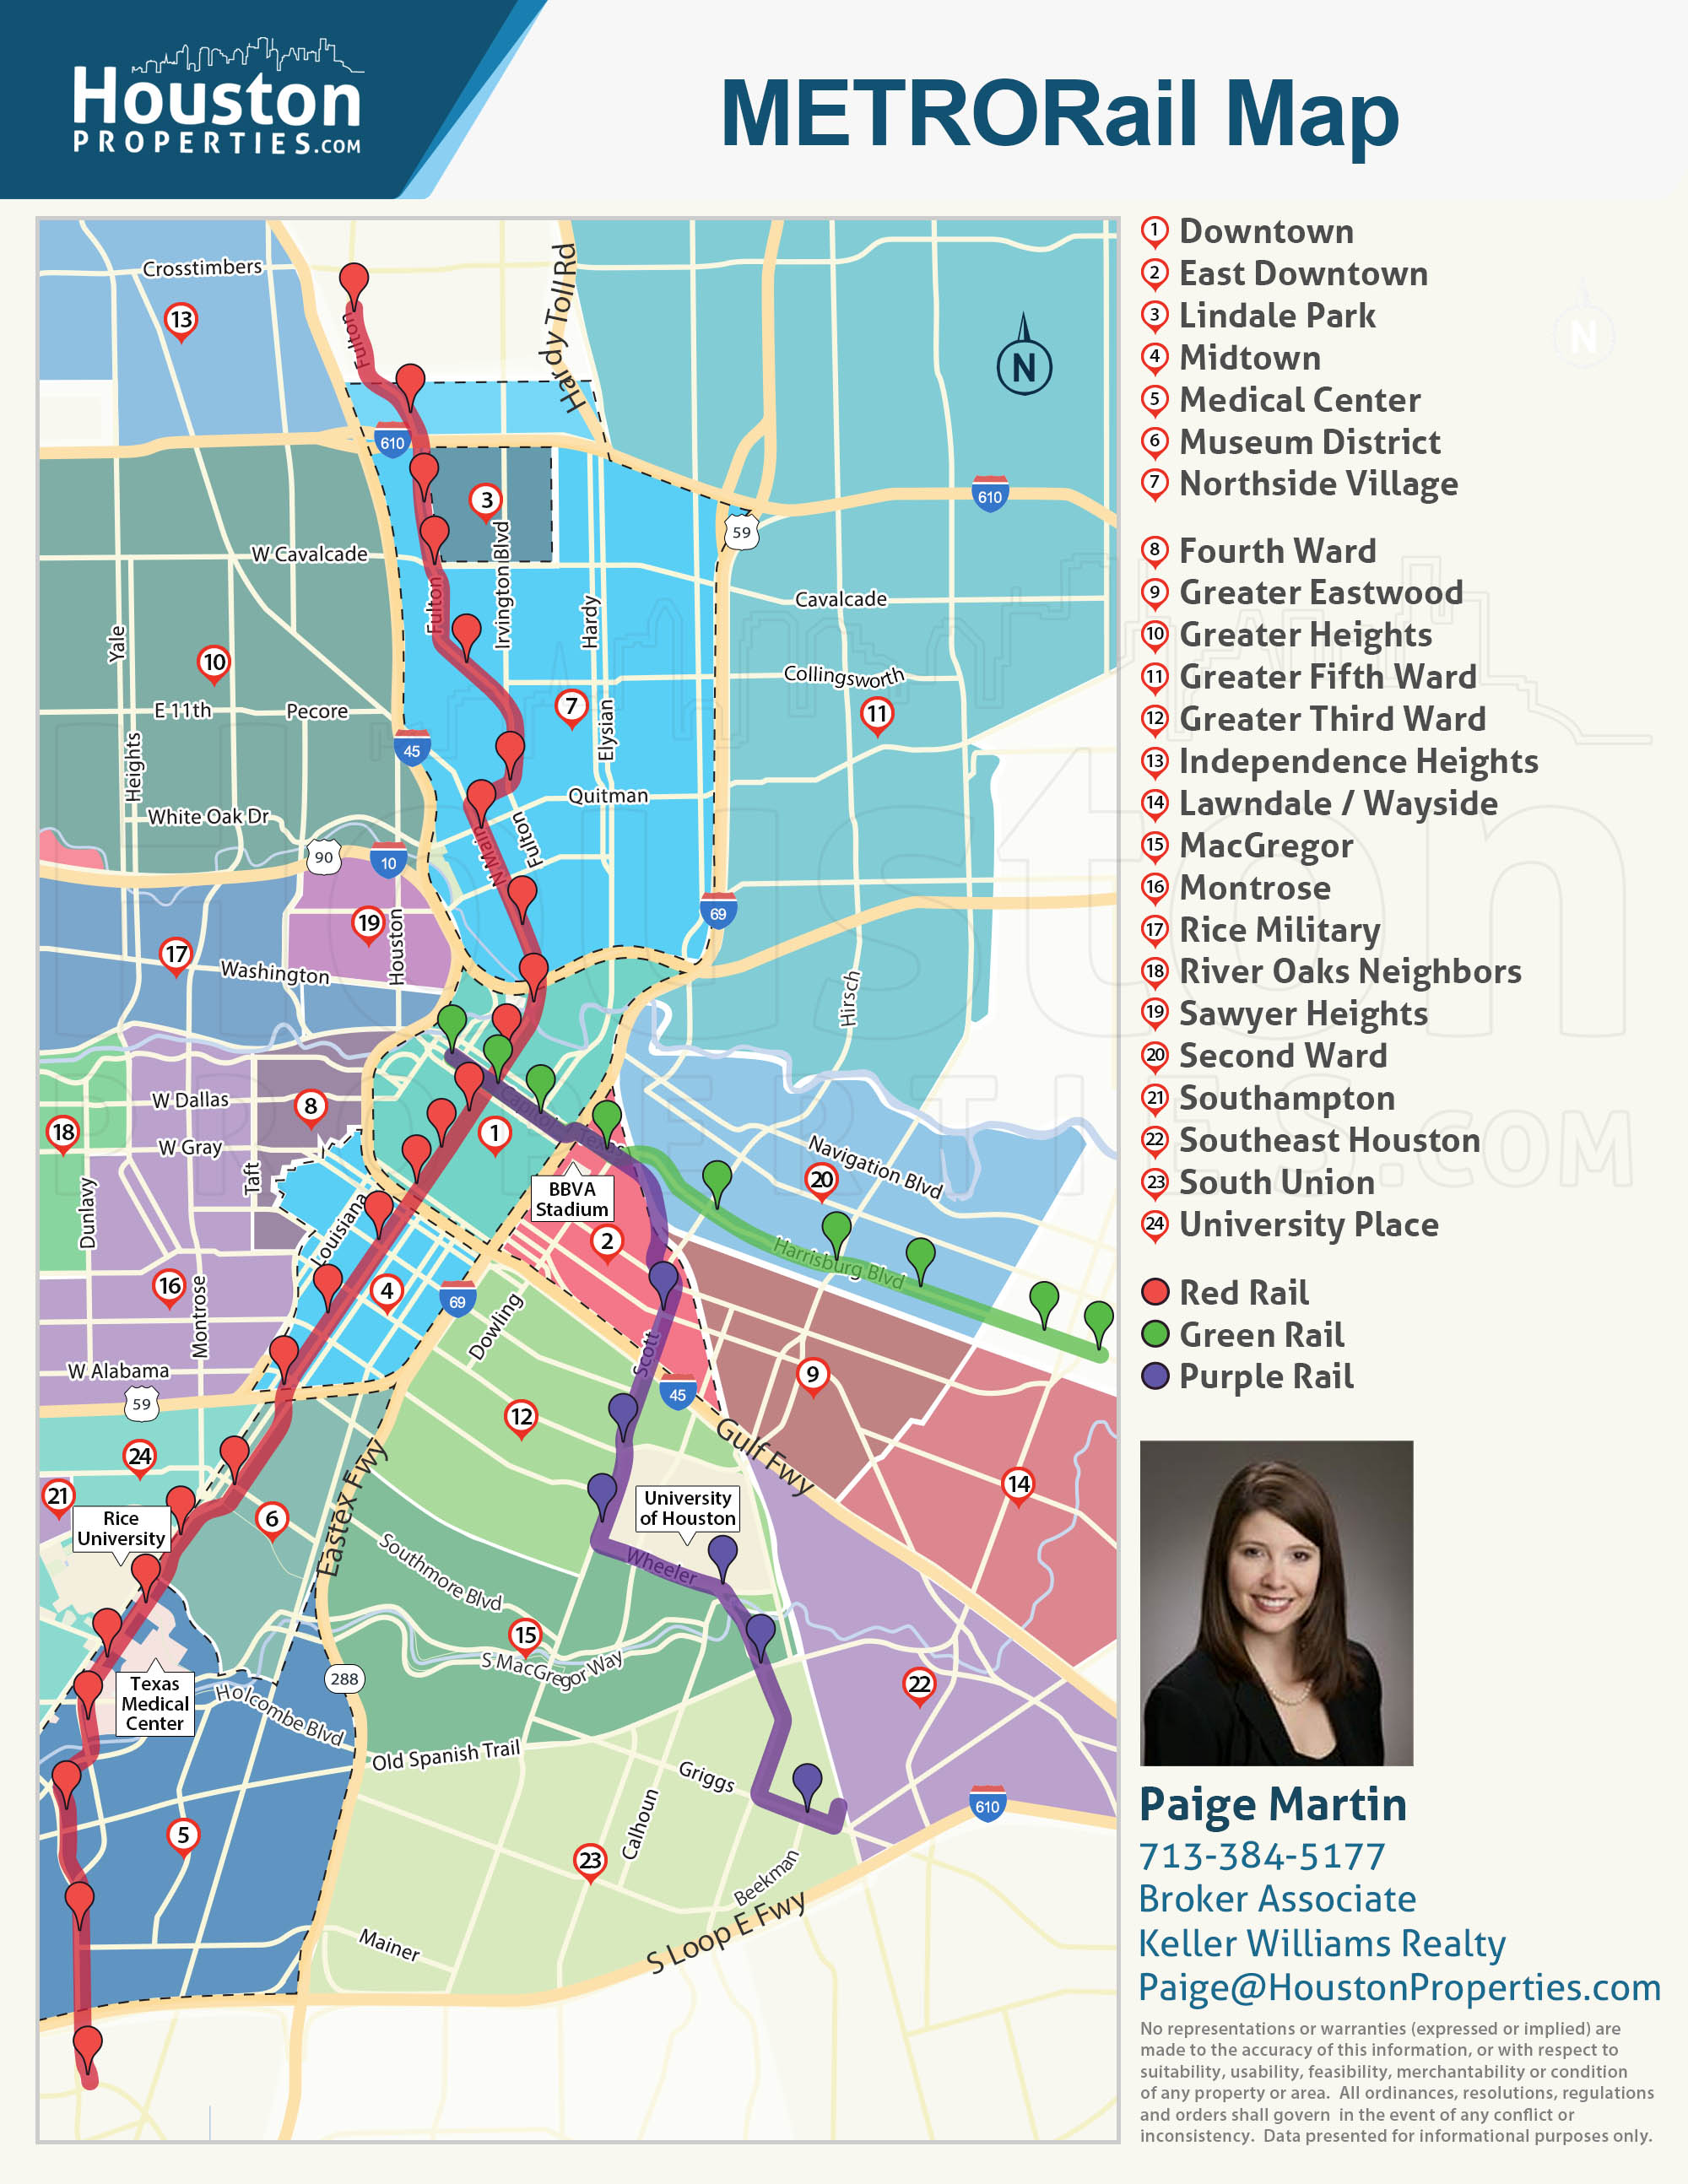 Midtown MetroRail Map